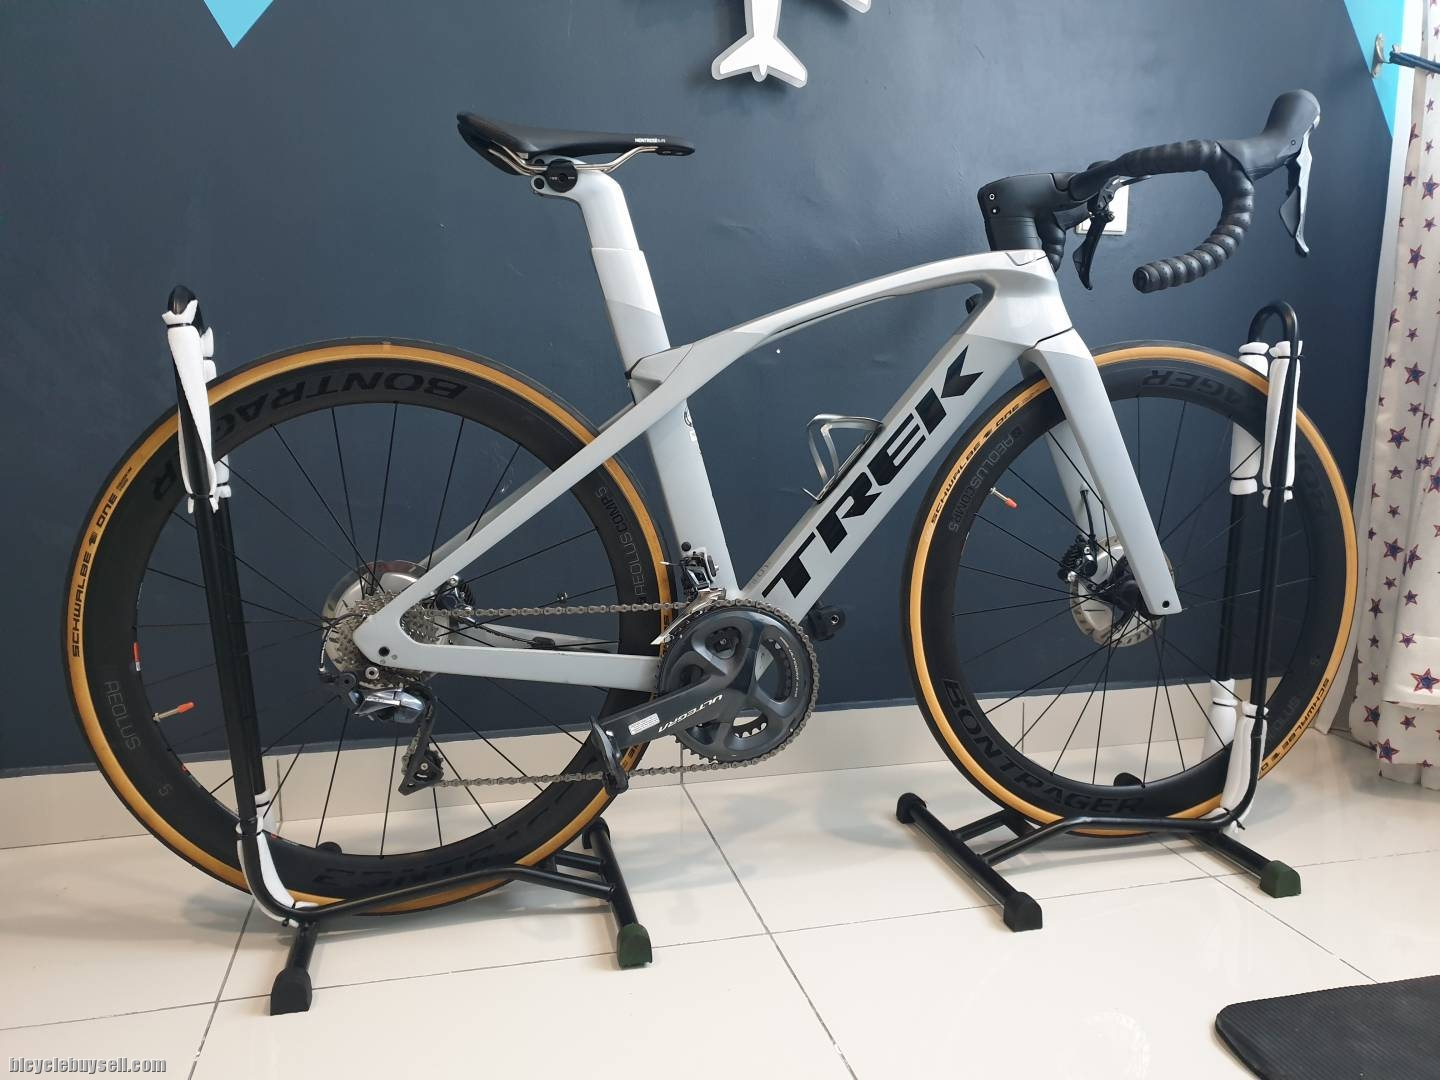 2019 Trek Madone Slr 6 Disc 4 Months Old Low Mileage